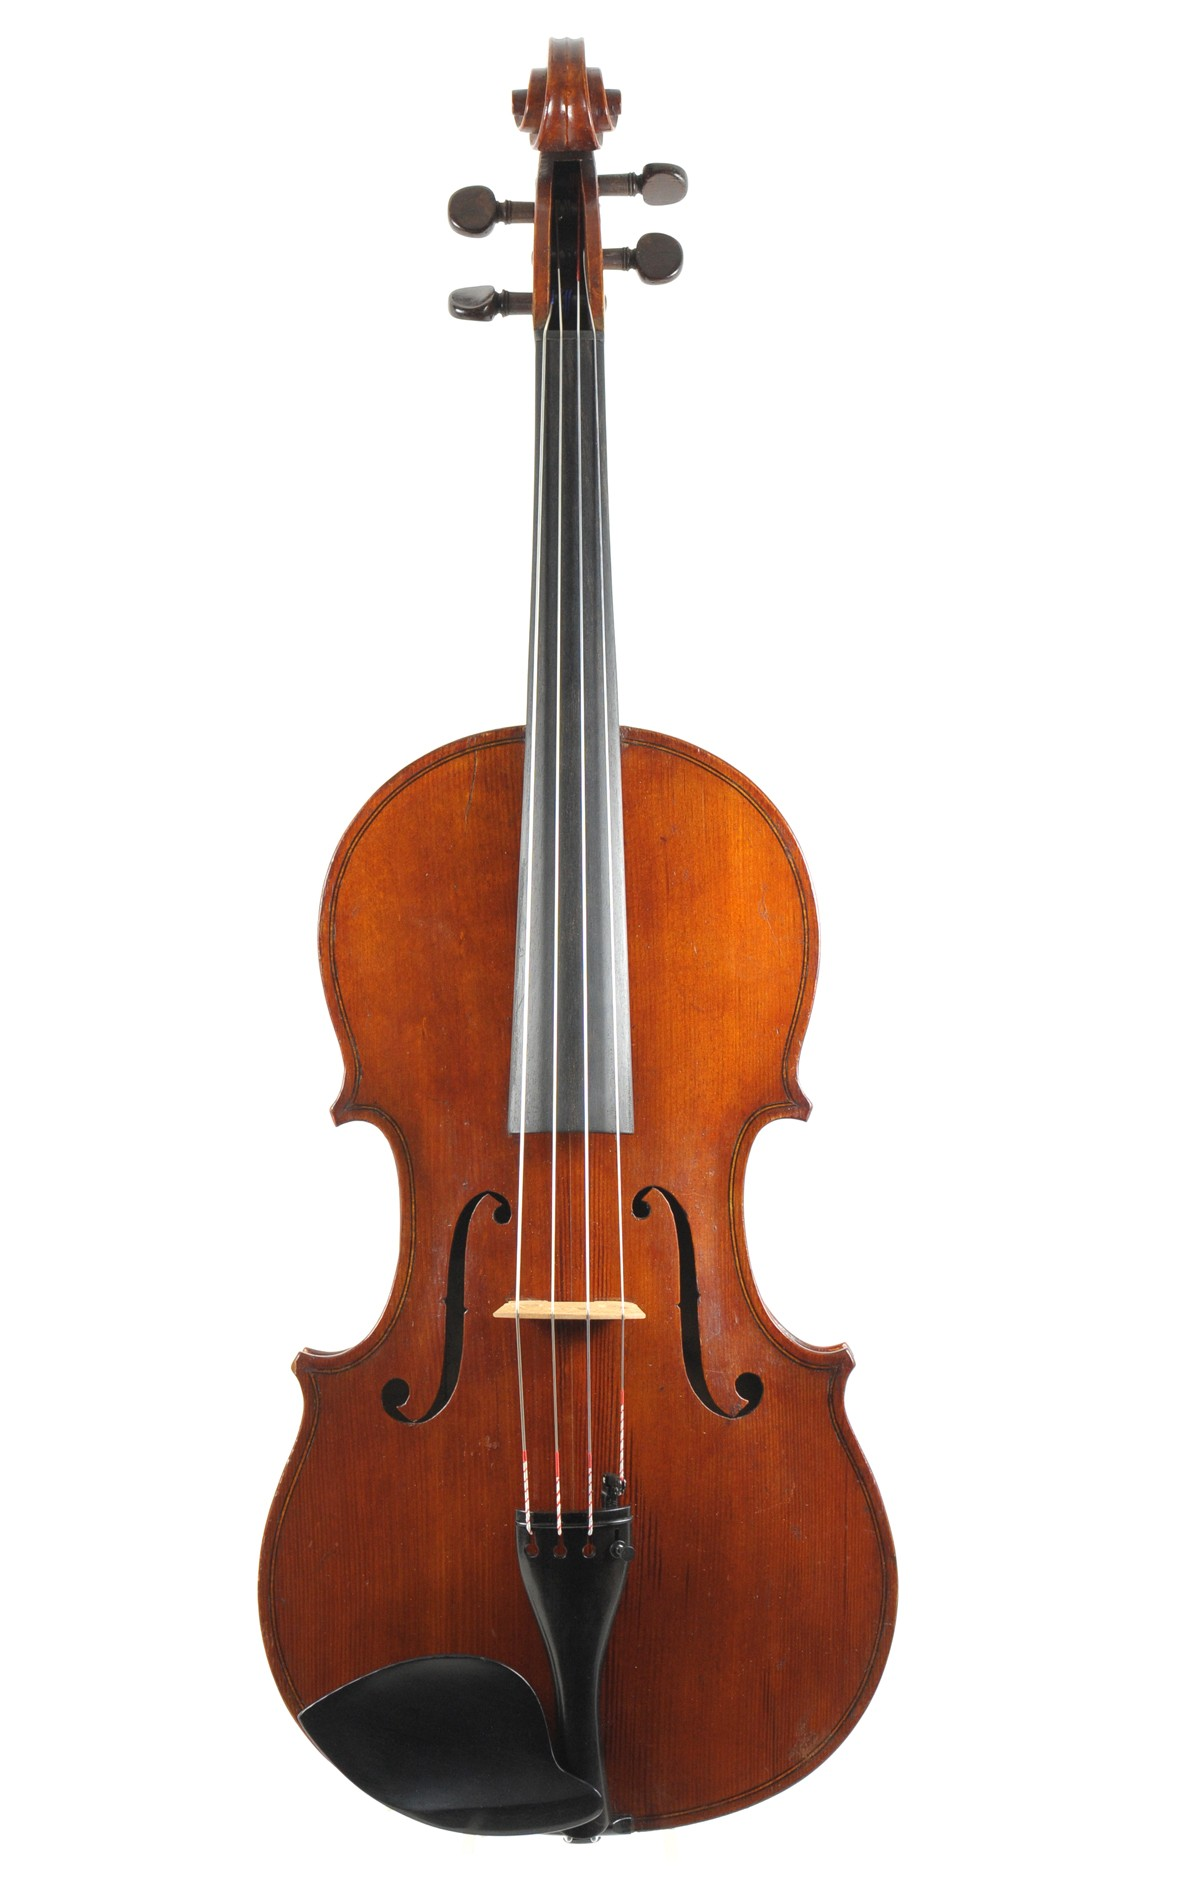 English viola with a large sound